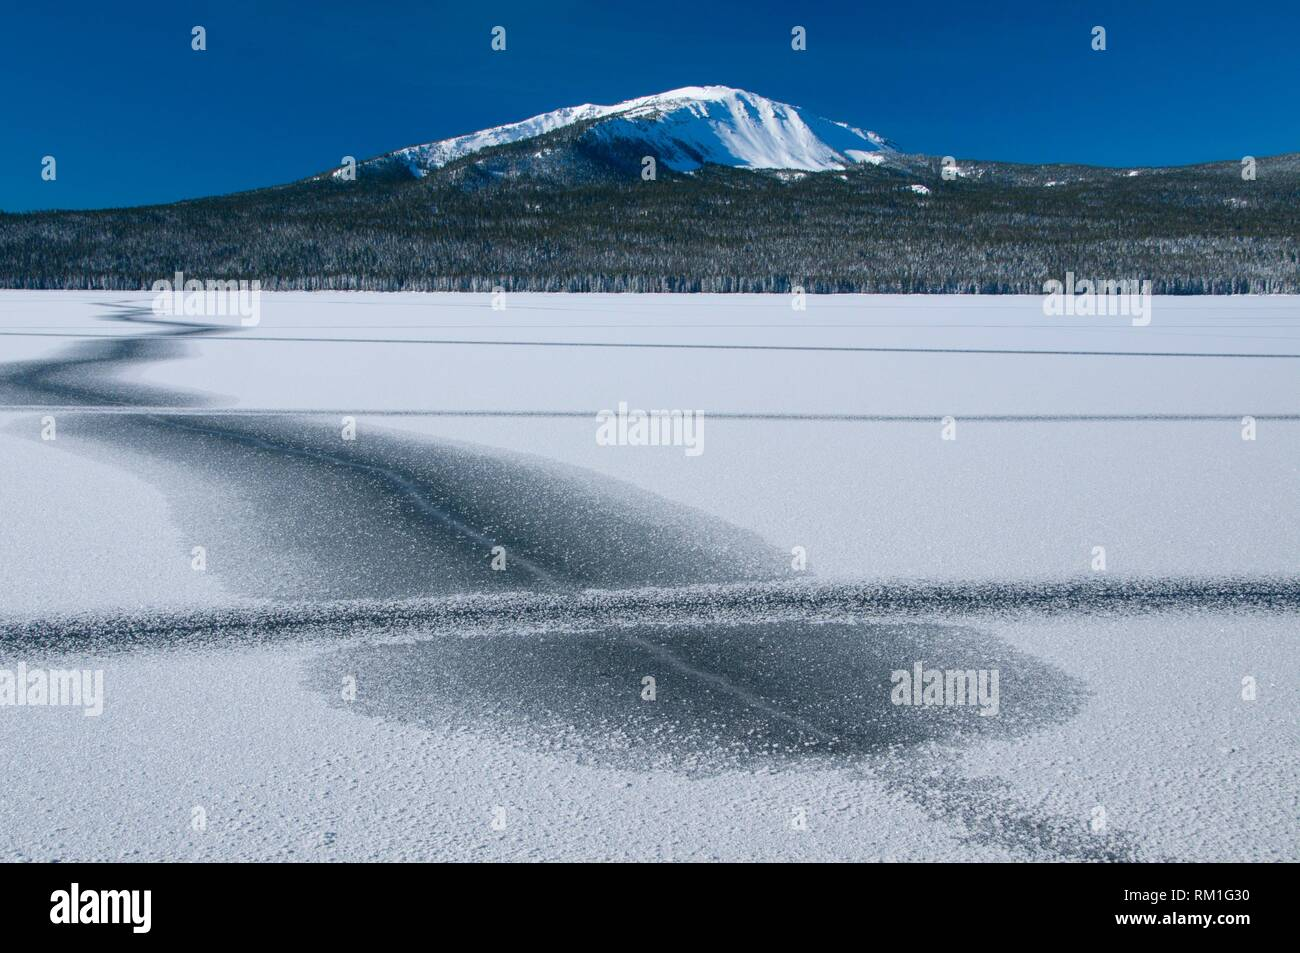 Mt Bailey with Diamond Lake in winter, Rogue-Umpqua National Scenic Byway, Umpqua National Forest, Oregon. - Stock Image